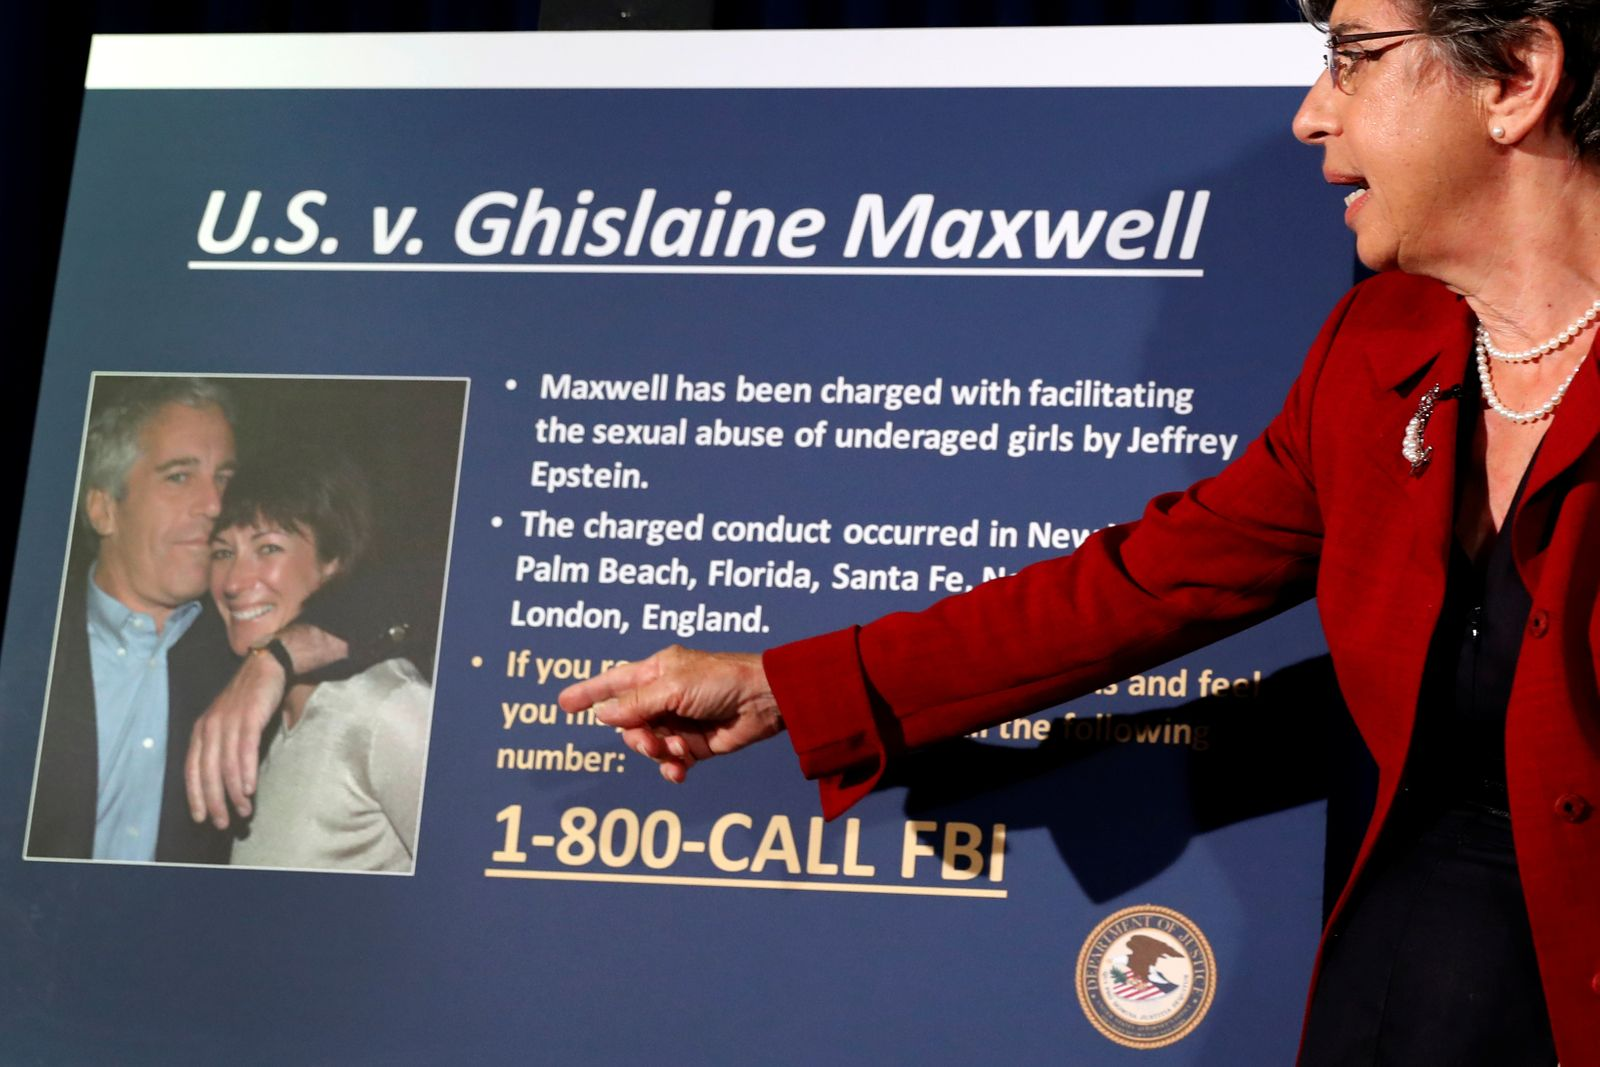 Audrey Strauss, Acting United States Attorney for the Southern District of New York announces charges against Ghislaine Maxwel in New York